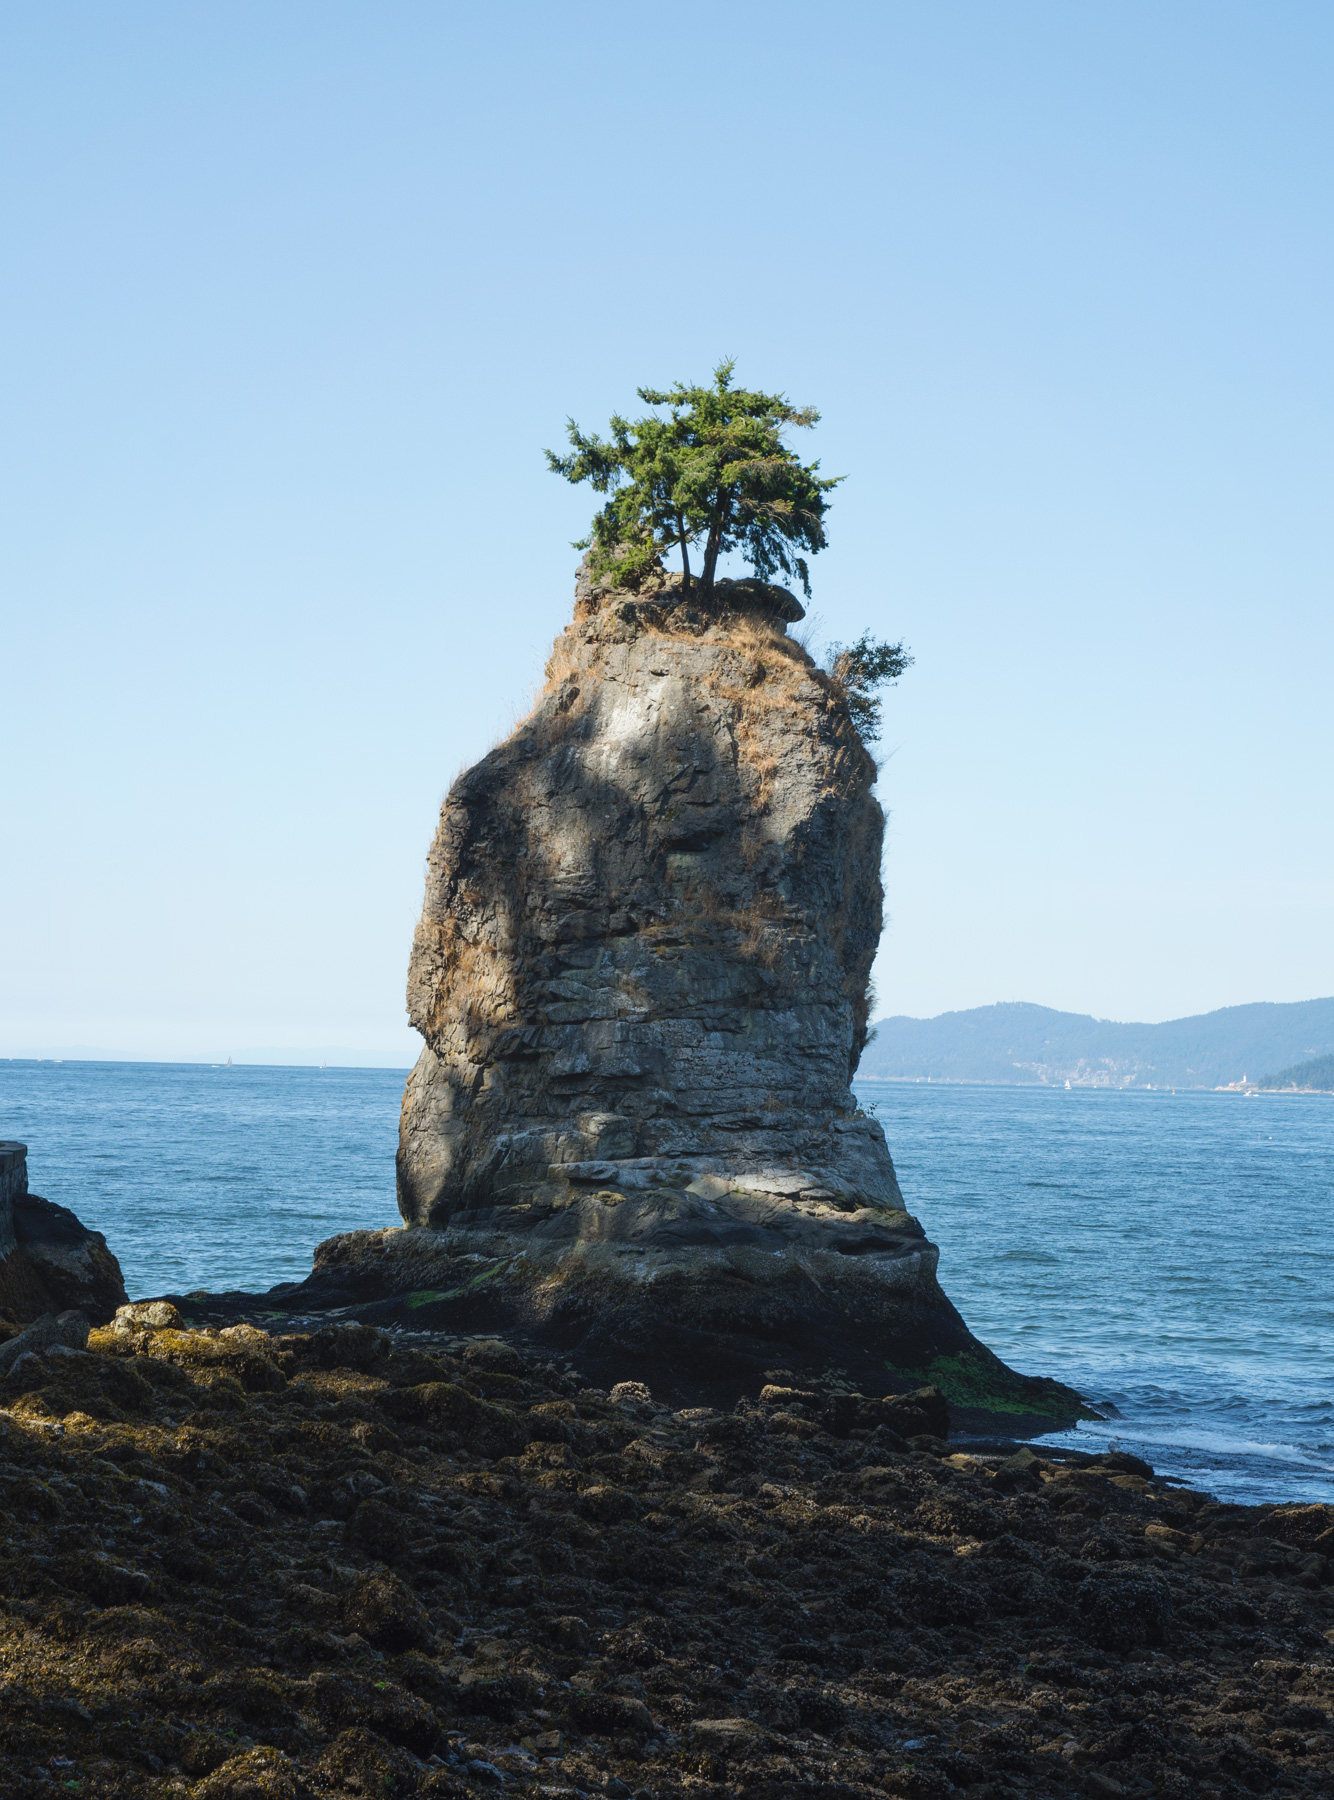 Tall rock with tree growing on top